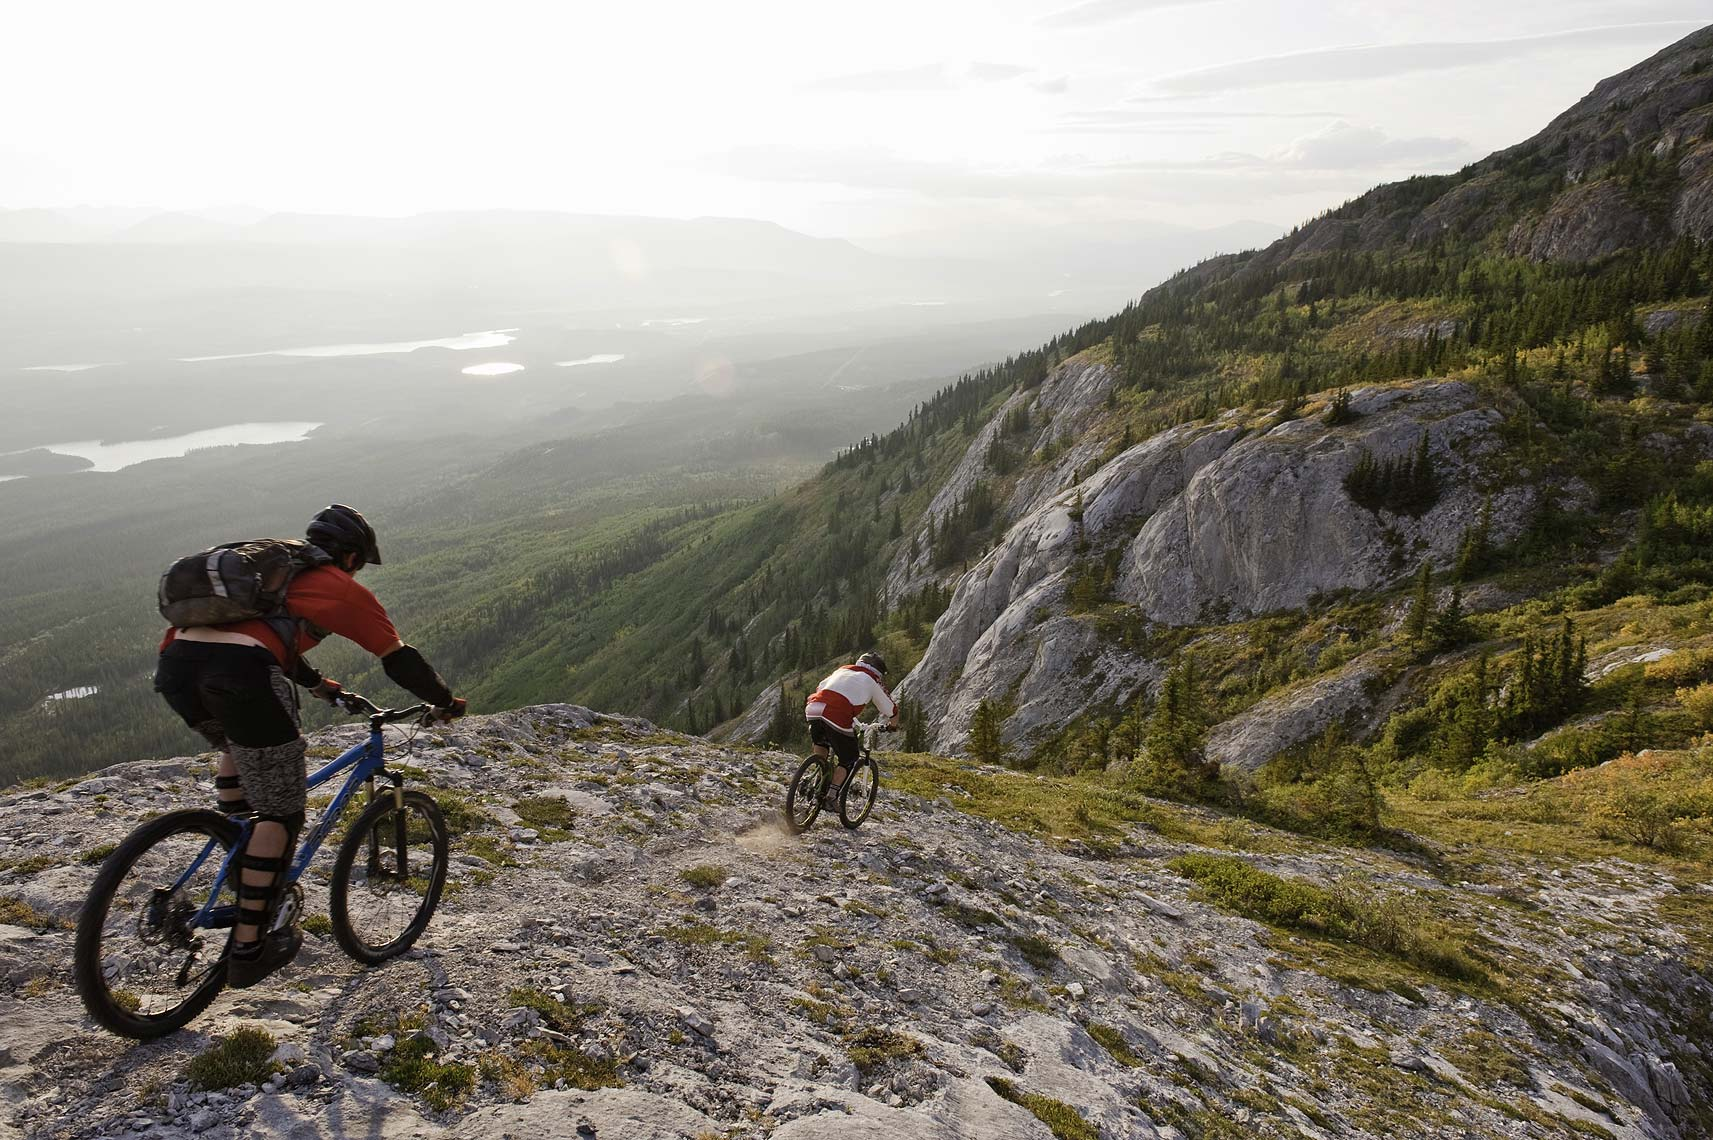 Yukon mountain biking